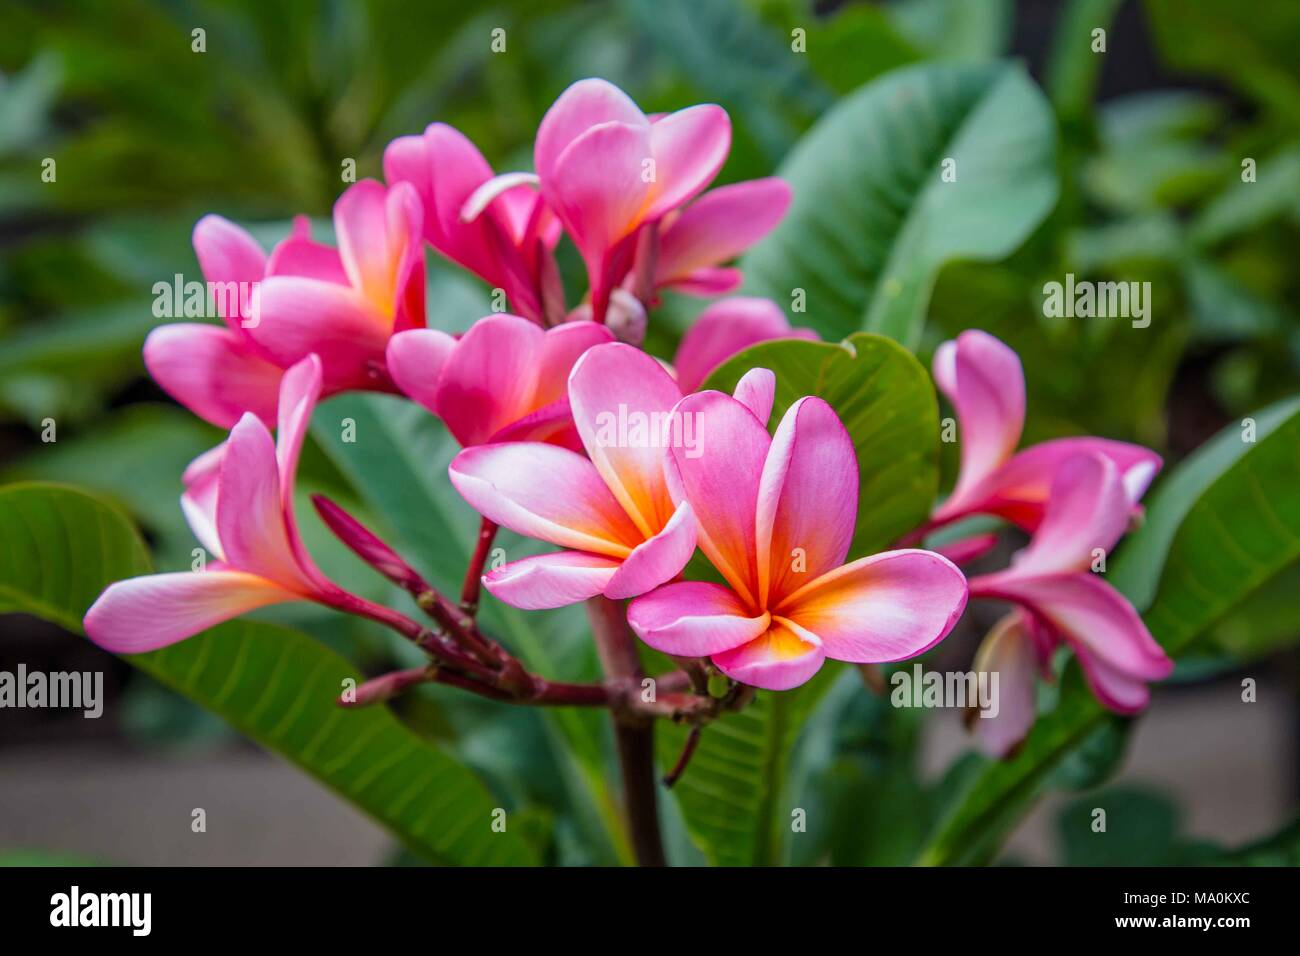 Pink champa flowers in Indonesia - Stock Image